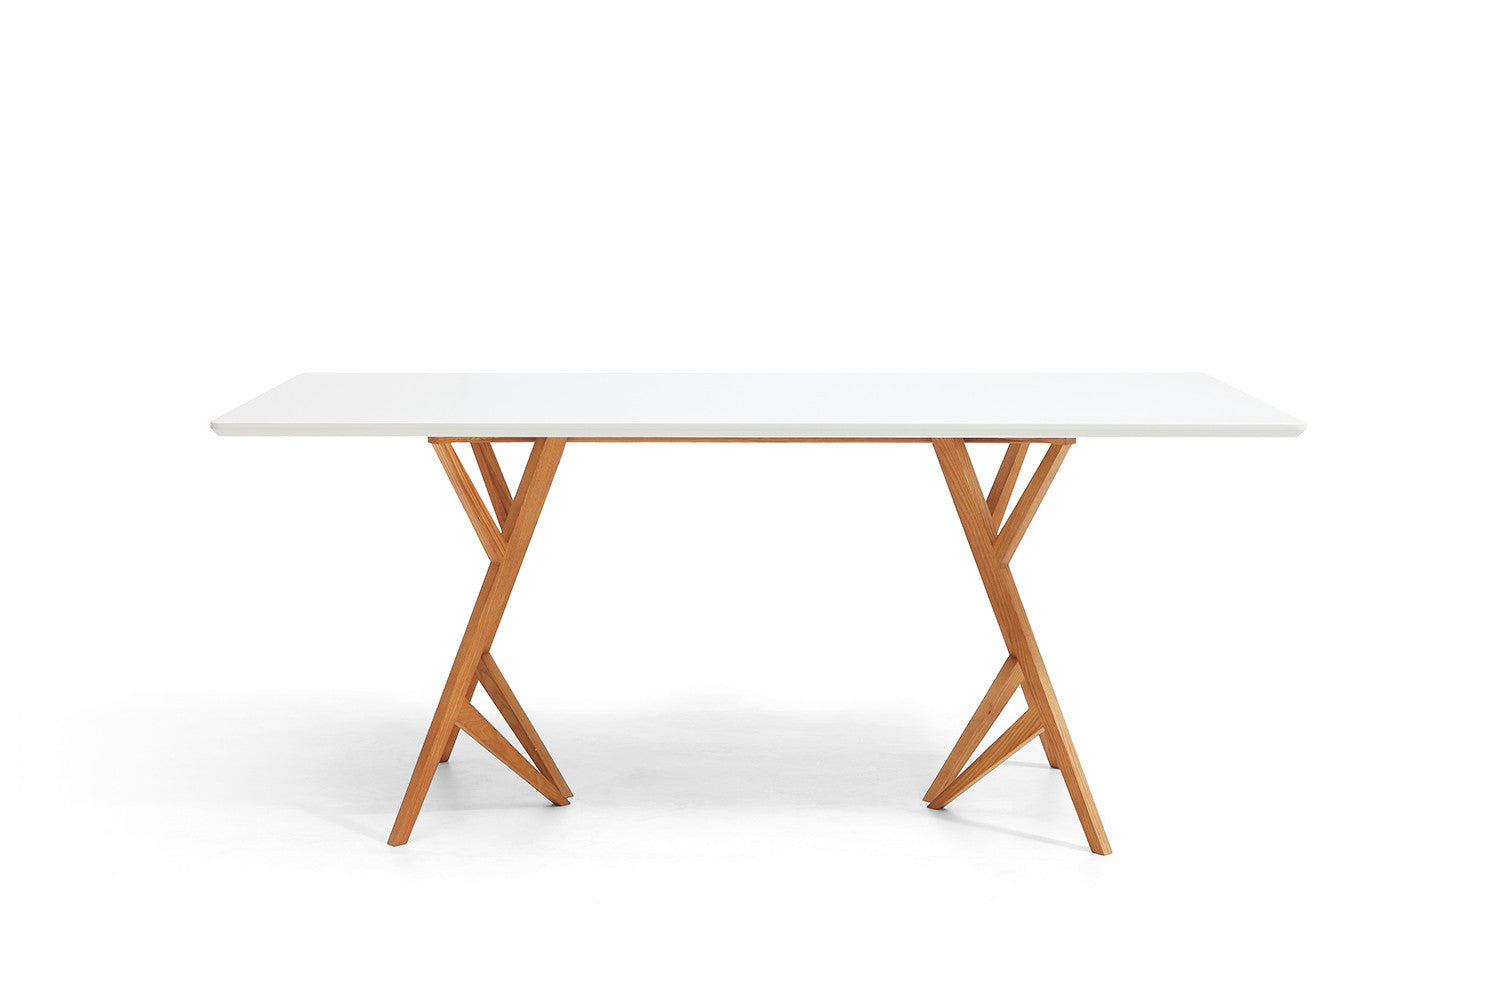 Table de salle manger design scandinave vispa dewarens for Table de salle a manger en bois